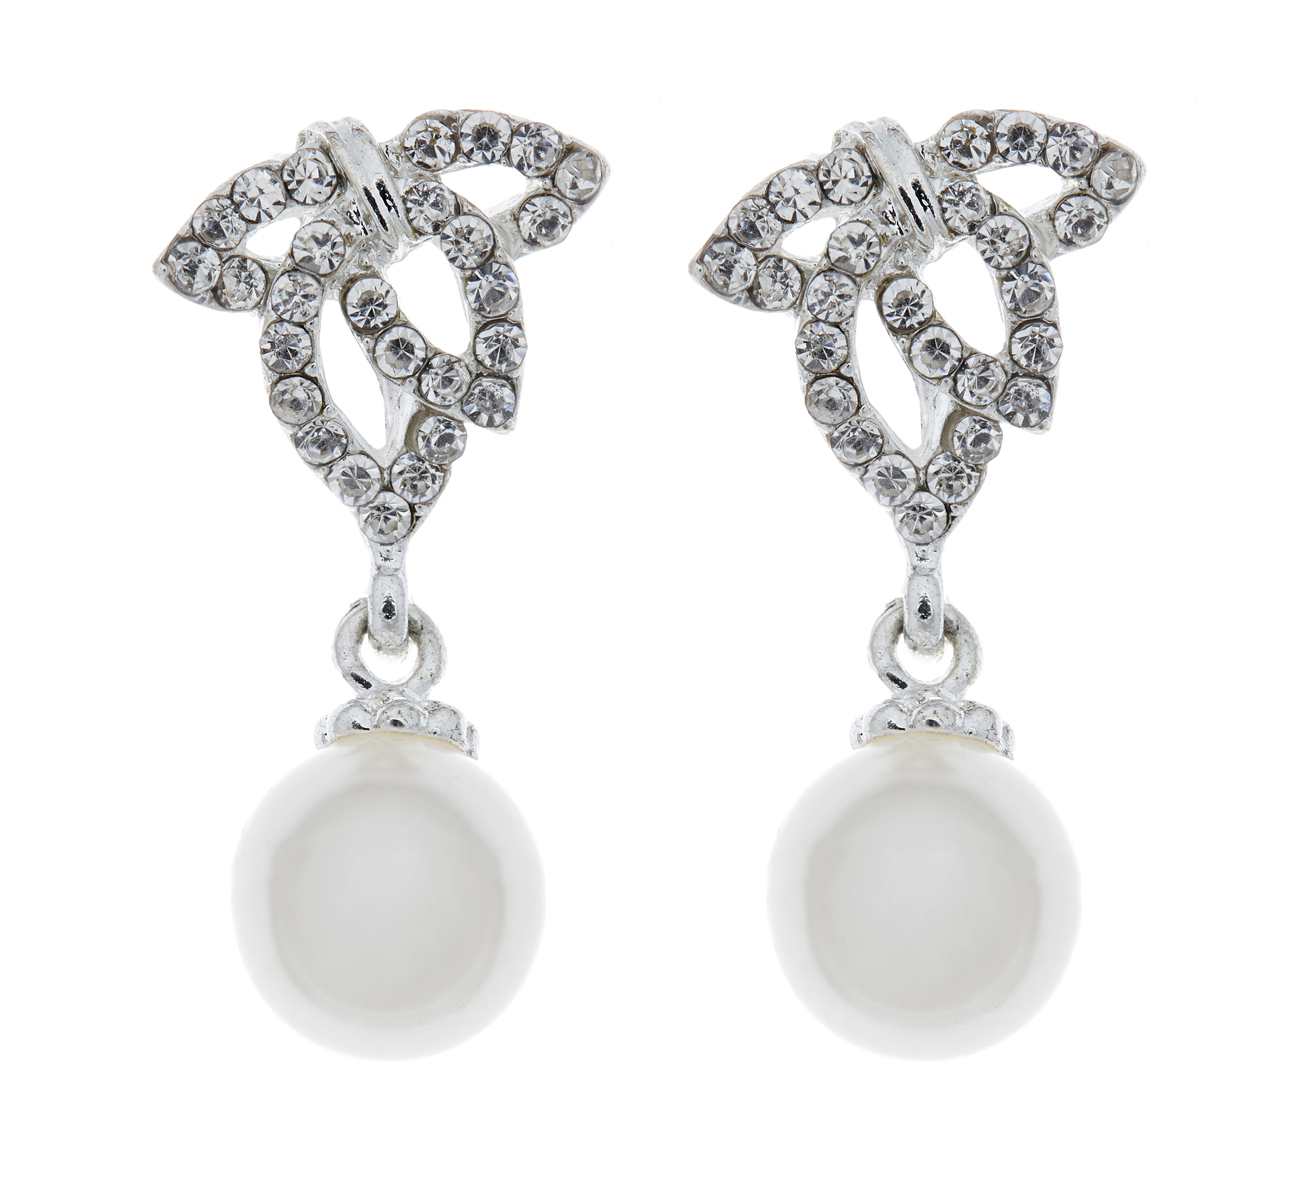 Clip On Earrings - Elle - silver drop earring with clear diamante crystals and a pearl